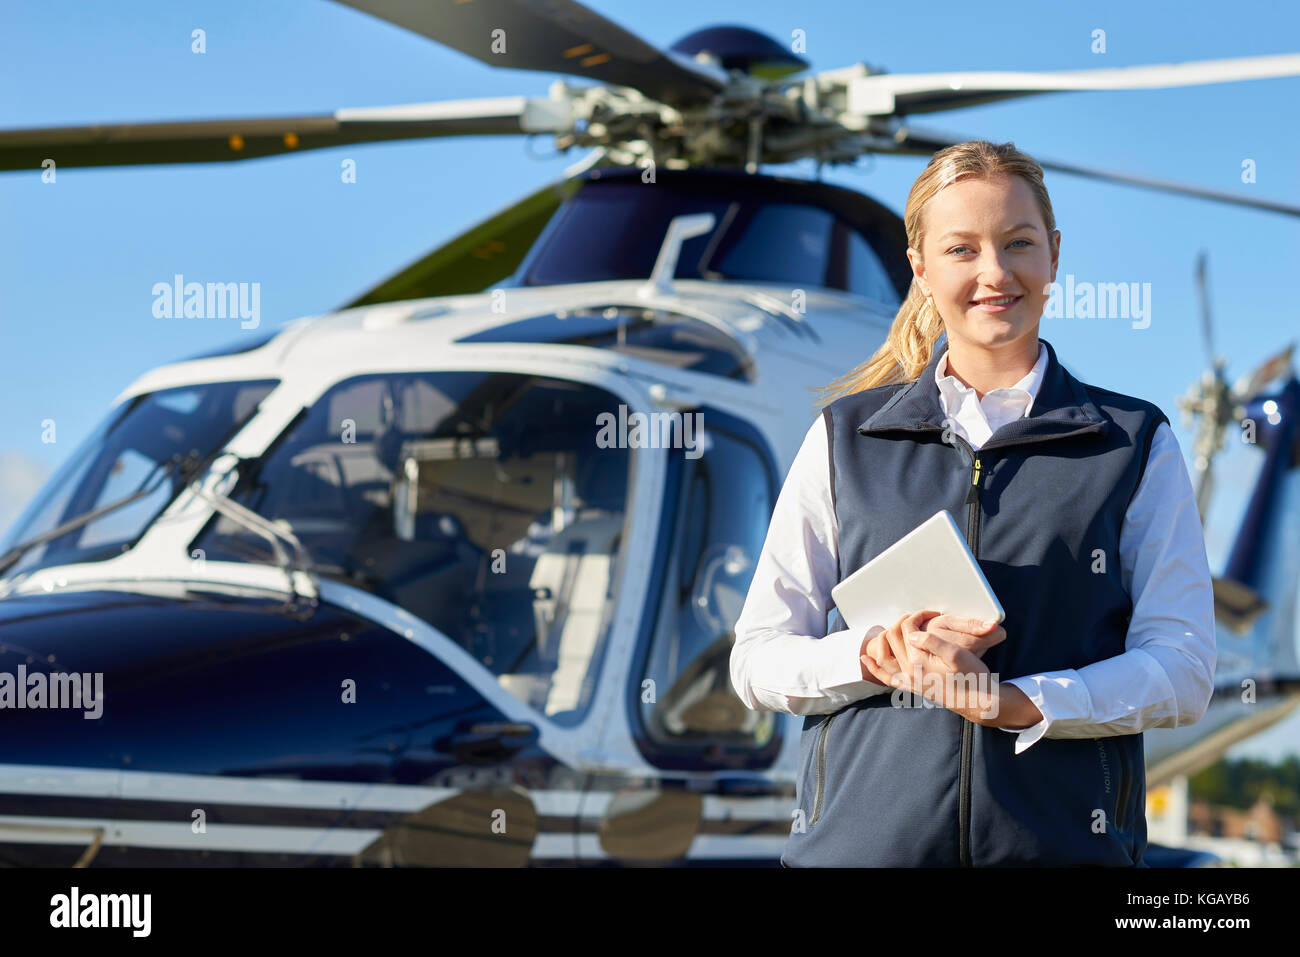 Portrait Of Female Pilot Standing In Front Of Helicopter With Digital Tablet - Stock Image